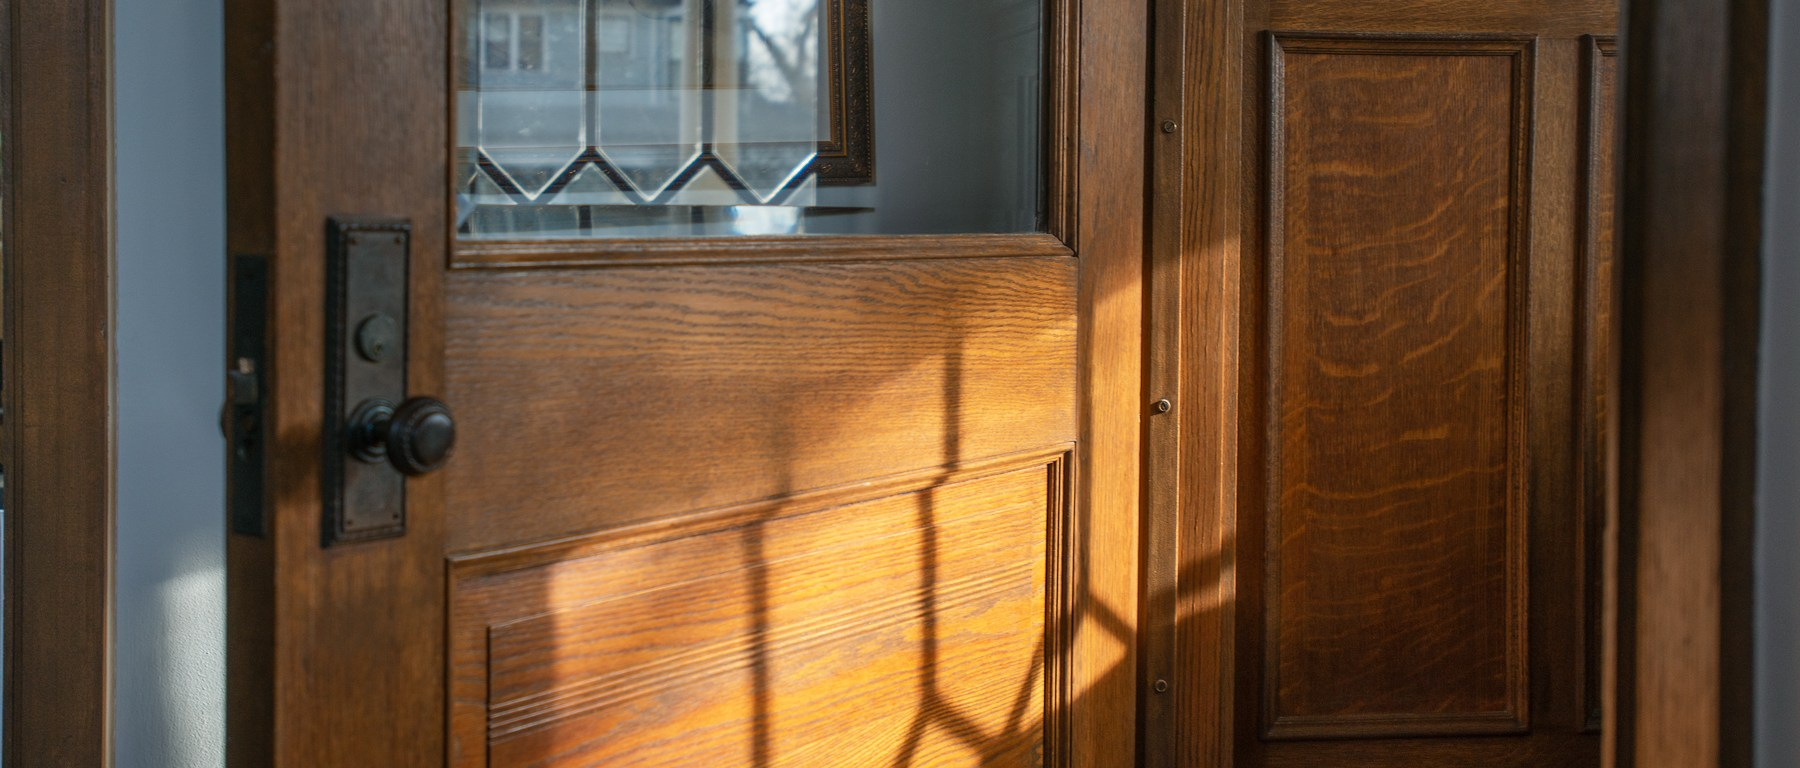 solid oak front door of our historic home in La Grange